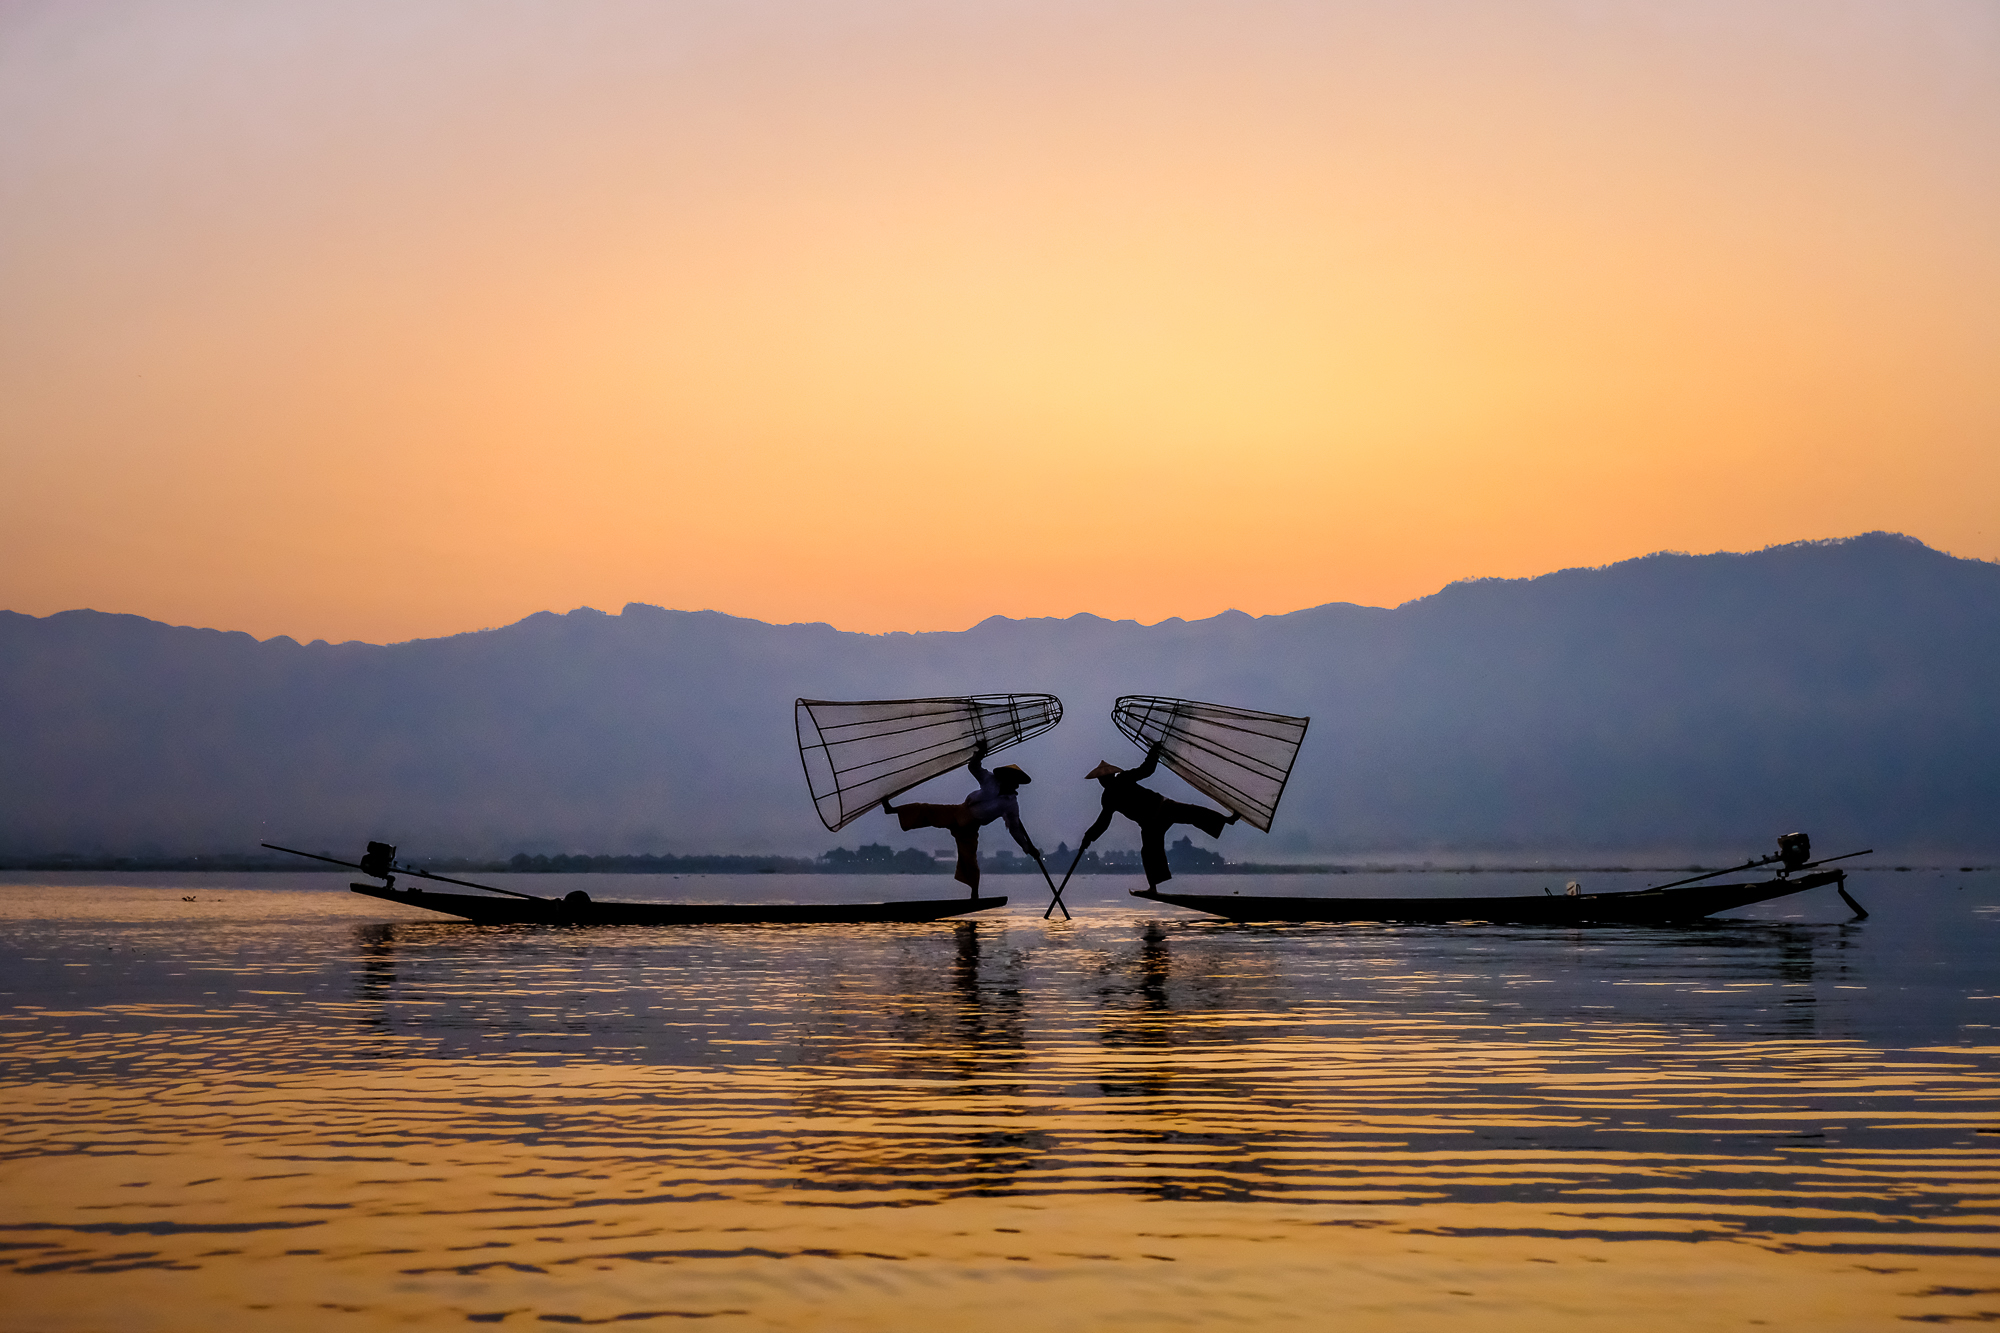 Morning Fishing at Inle Lake, Myanmar